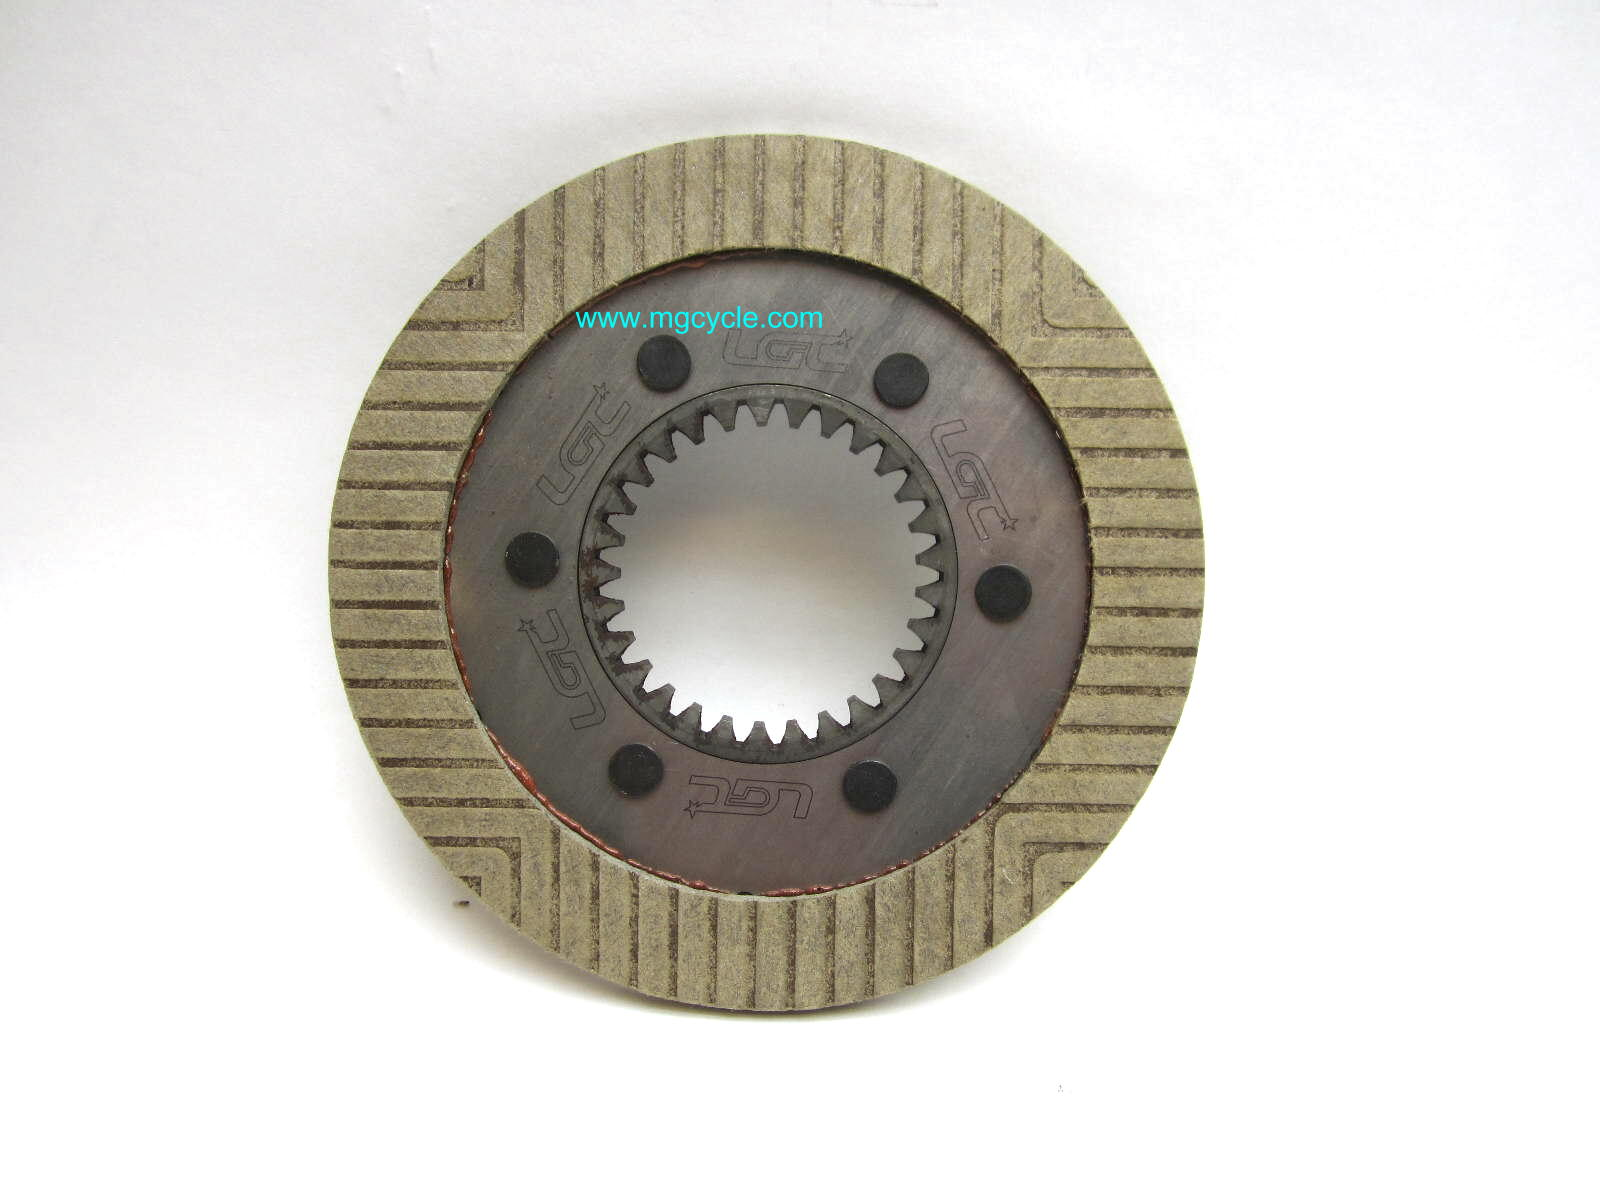 clutch flywheel : MG Cycle, Moto Guzzi Parts and Accessories ...